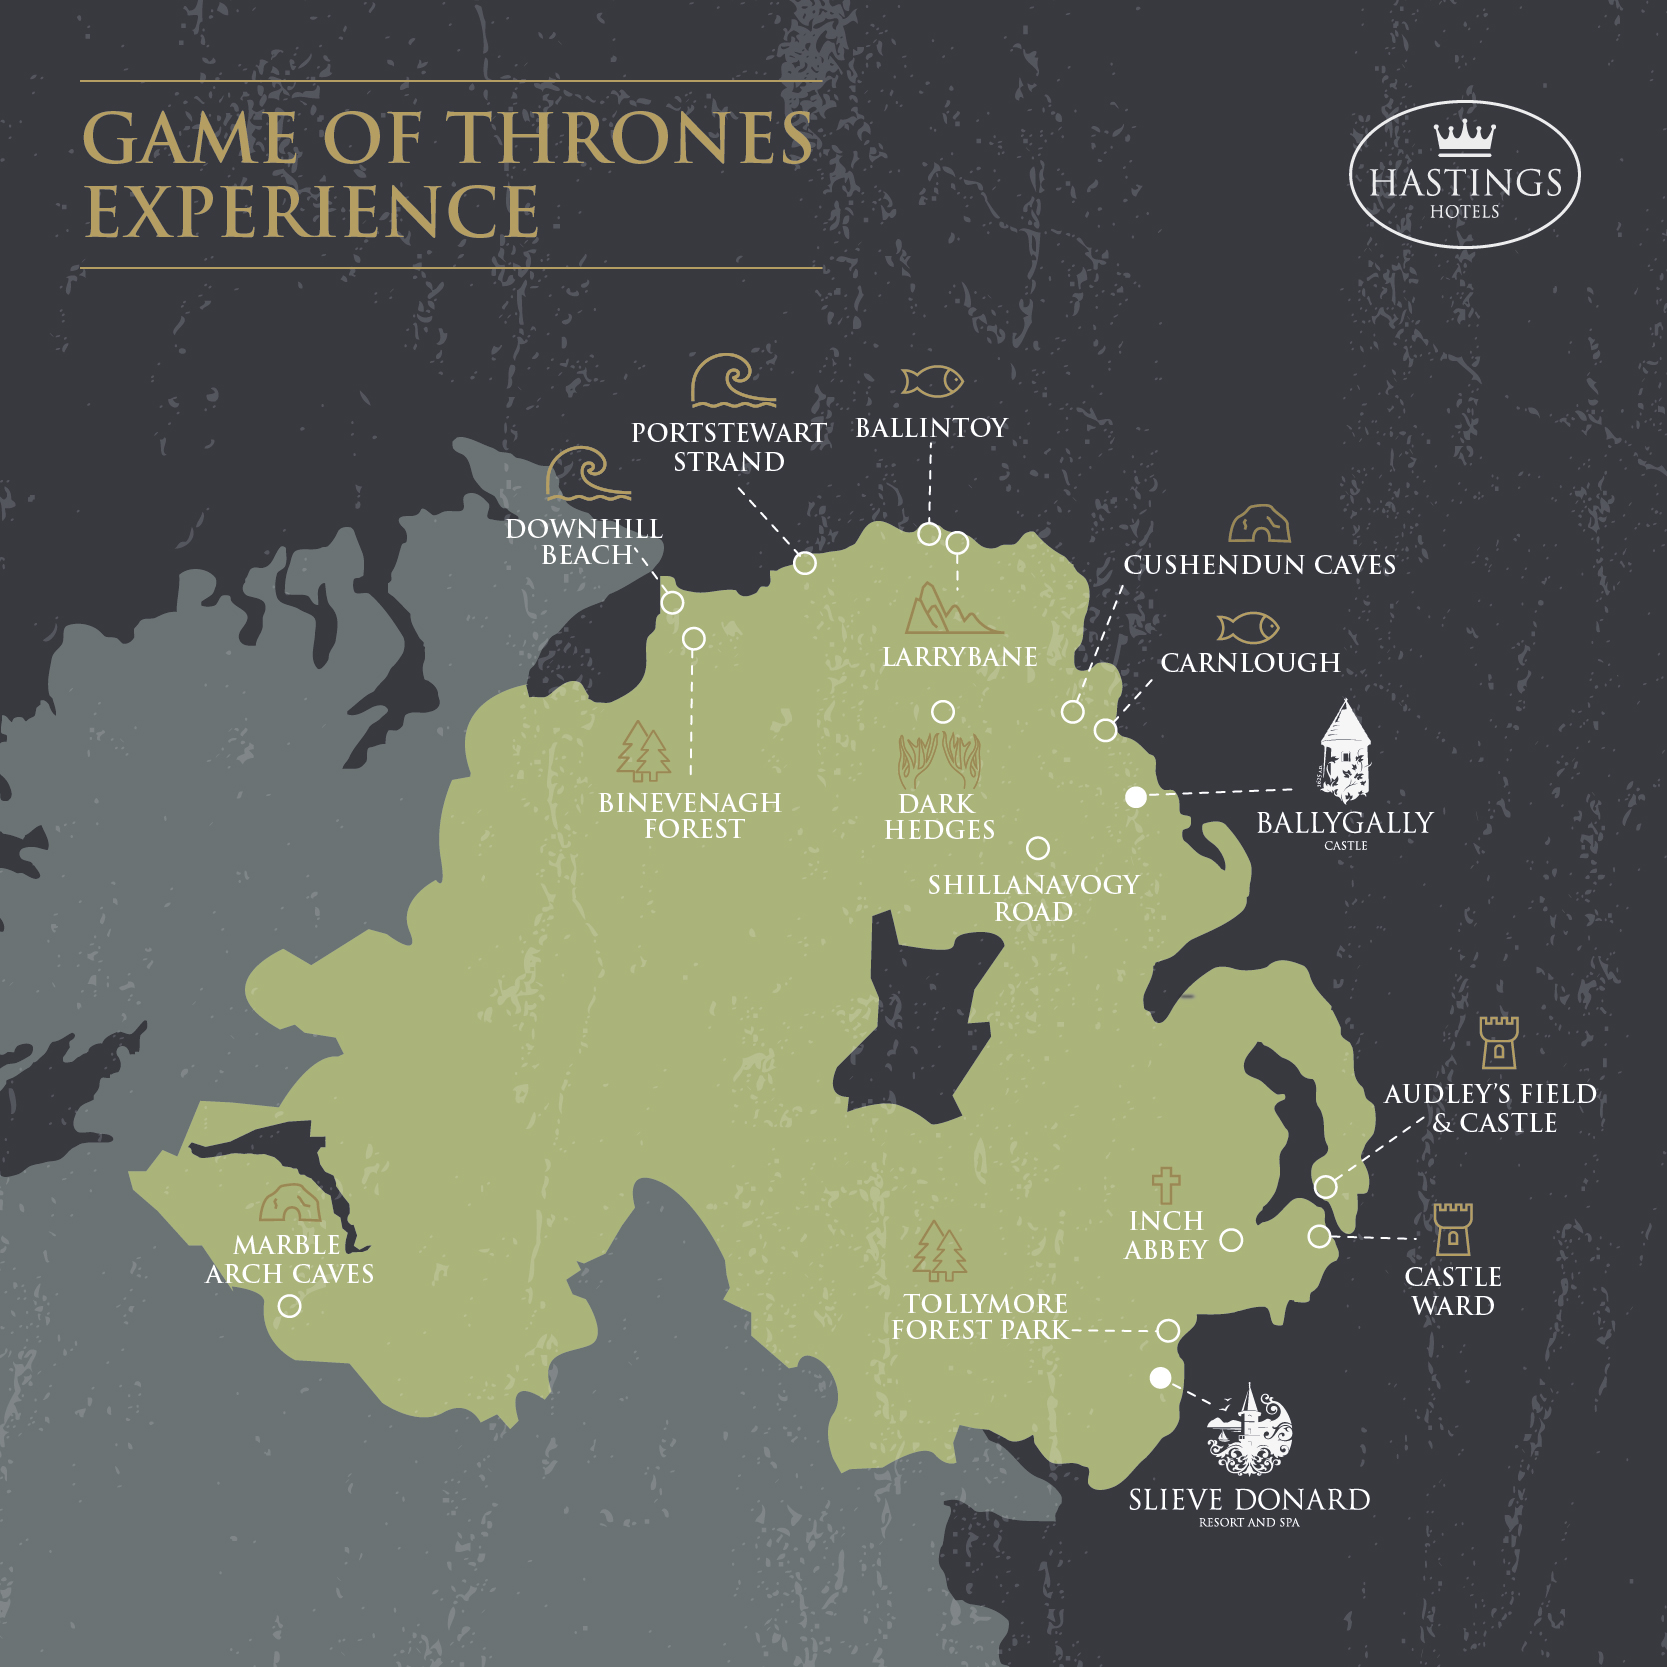 Game of Thrones locations Belfast | Ballygally Castle | Co. Antrim ...